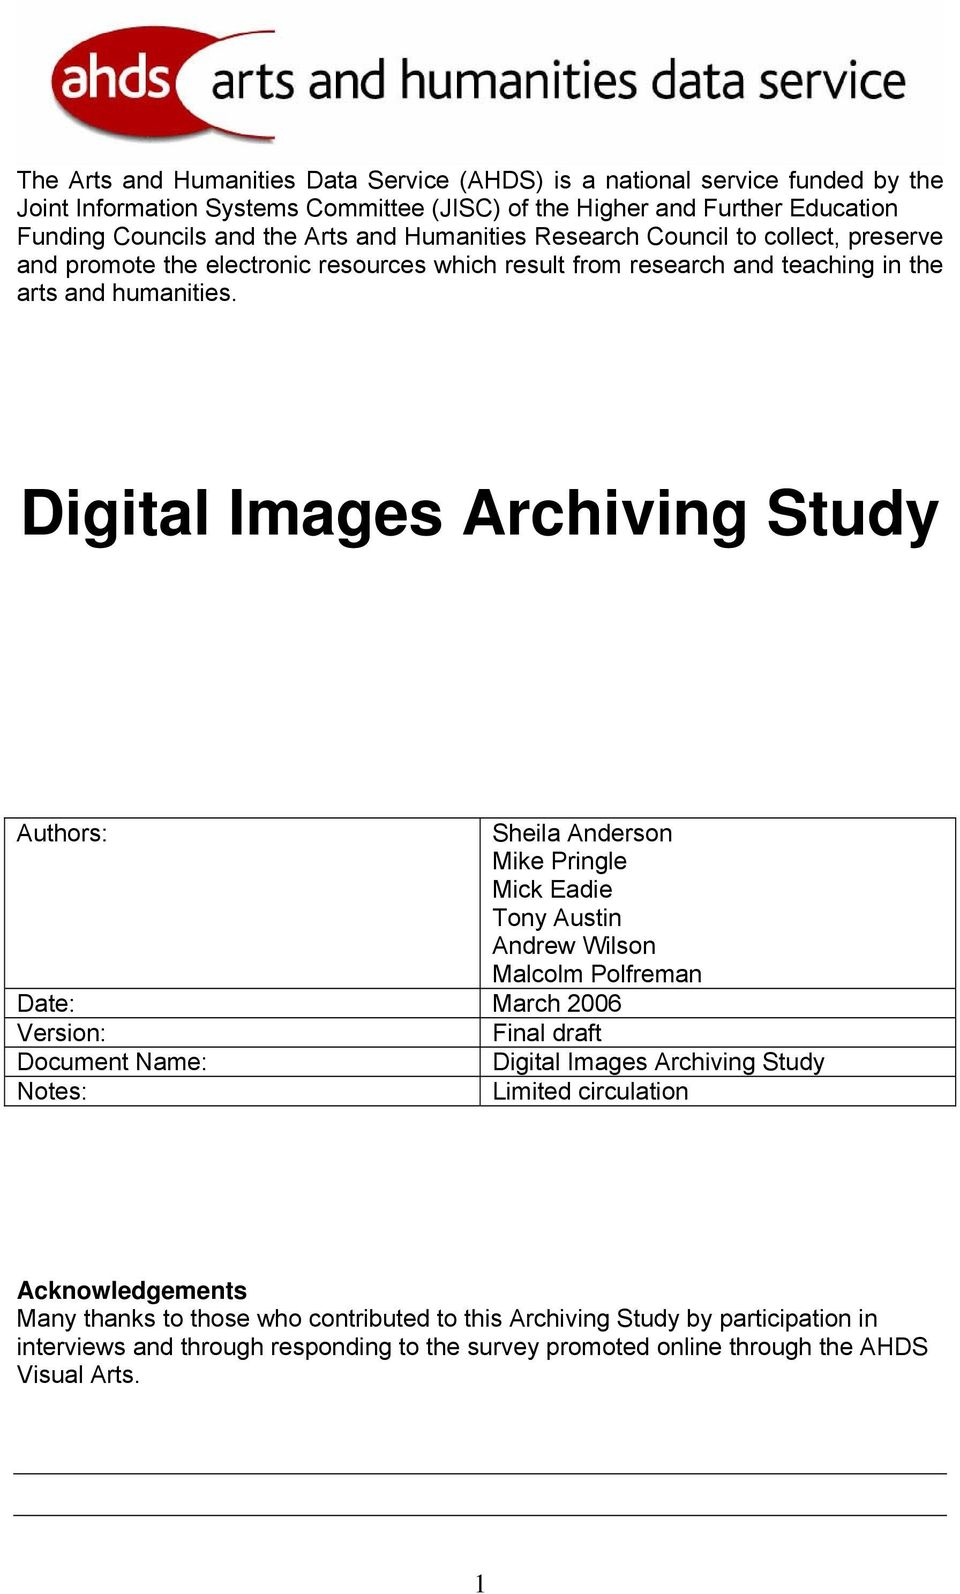 Digital Images Archiving Study Authors: Sheila Anderson Mike Pringle Mick Eadie Tony Austin Andrew Wilson Malcolm Polfreman Date: March 2006 Version: Final draft Document Name: Digital Images